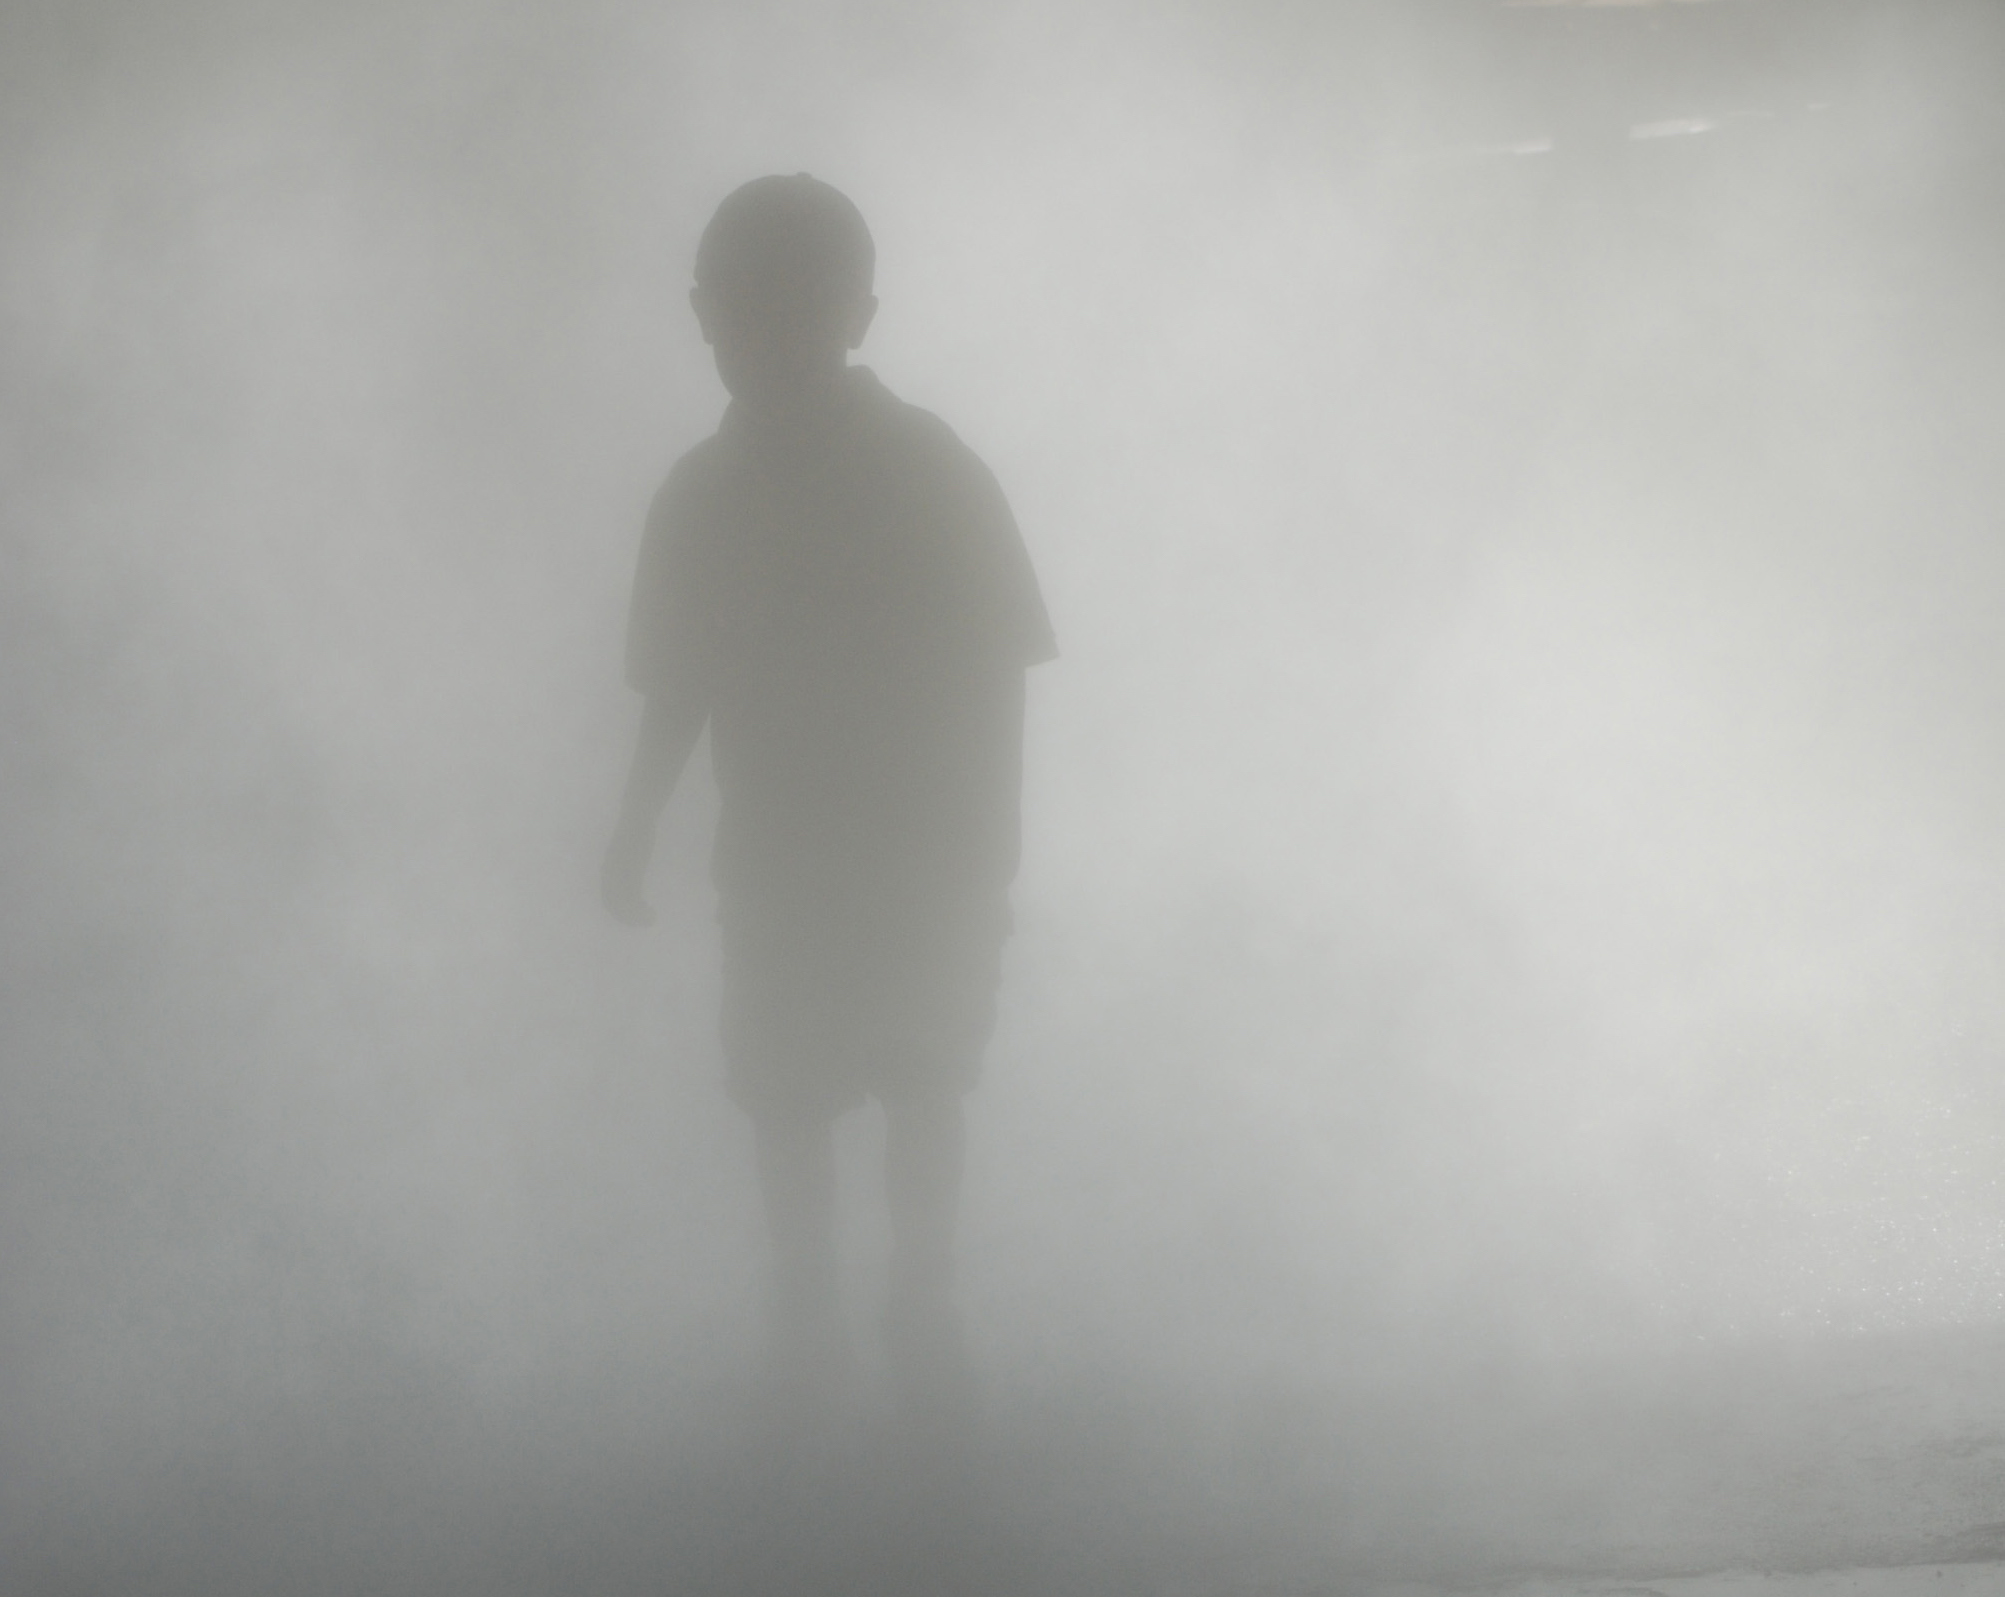 7 child ghost stories that will eerily remind you of Dear